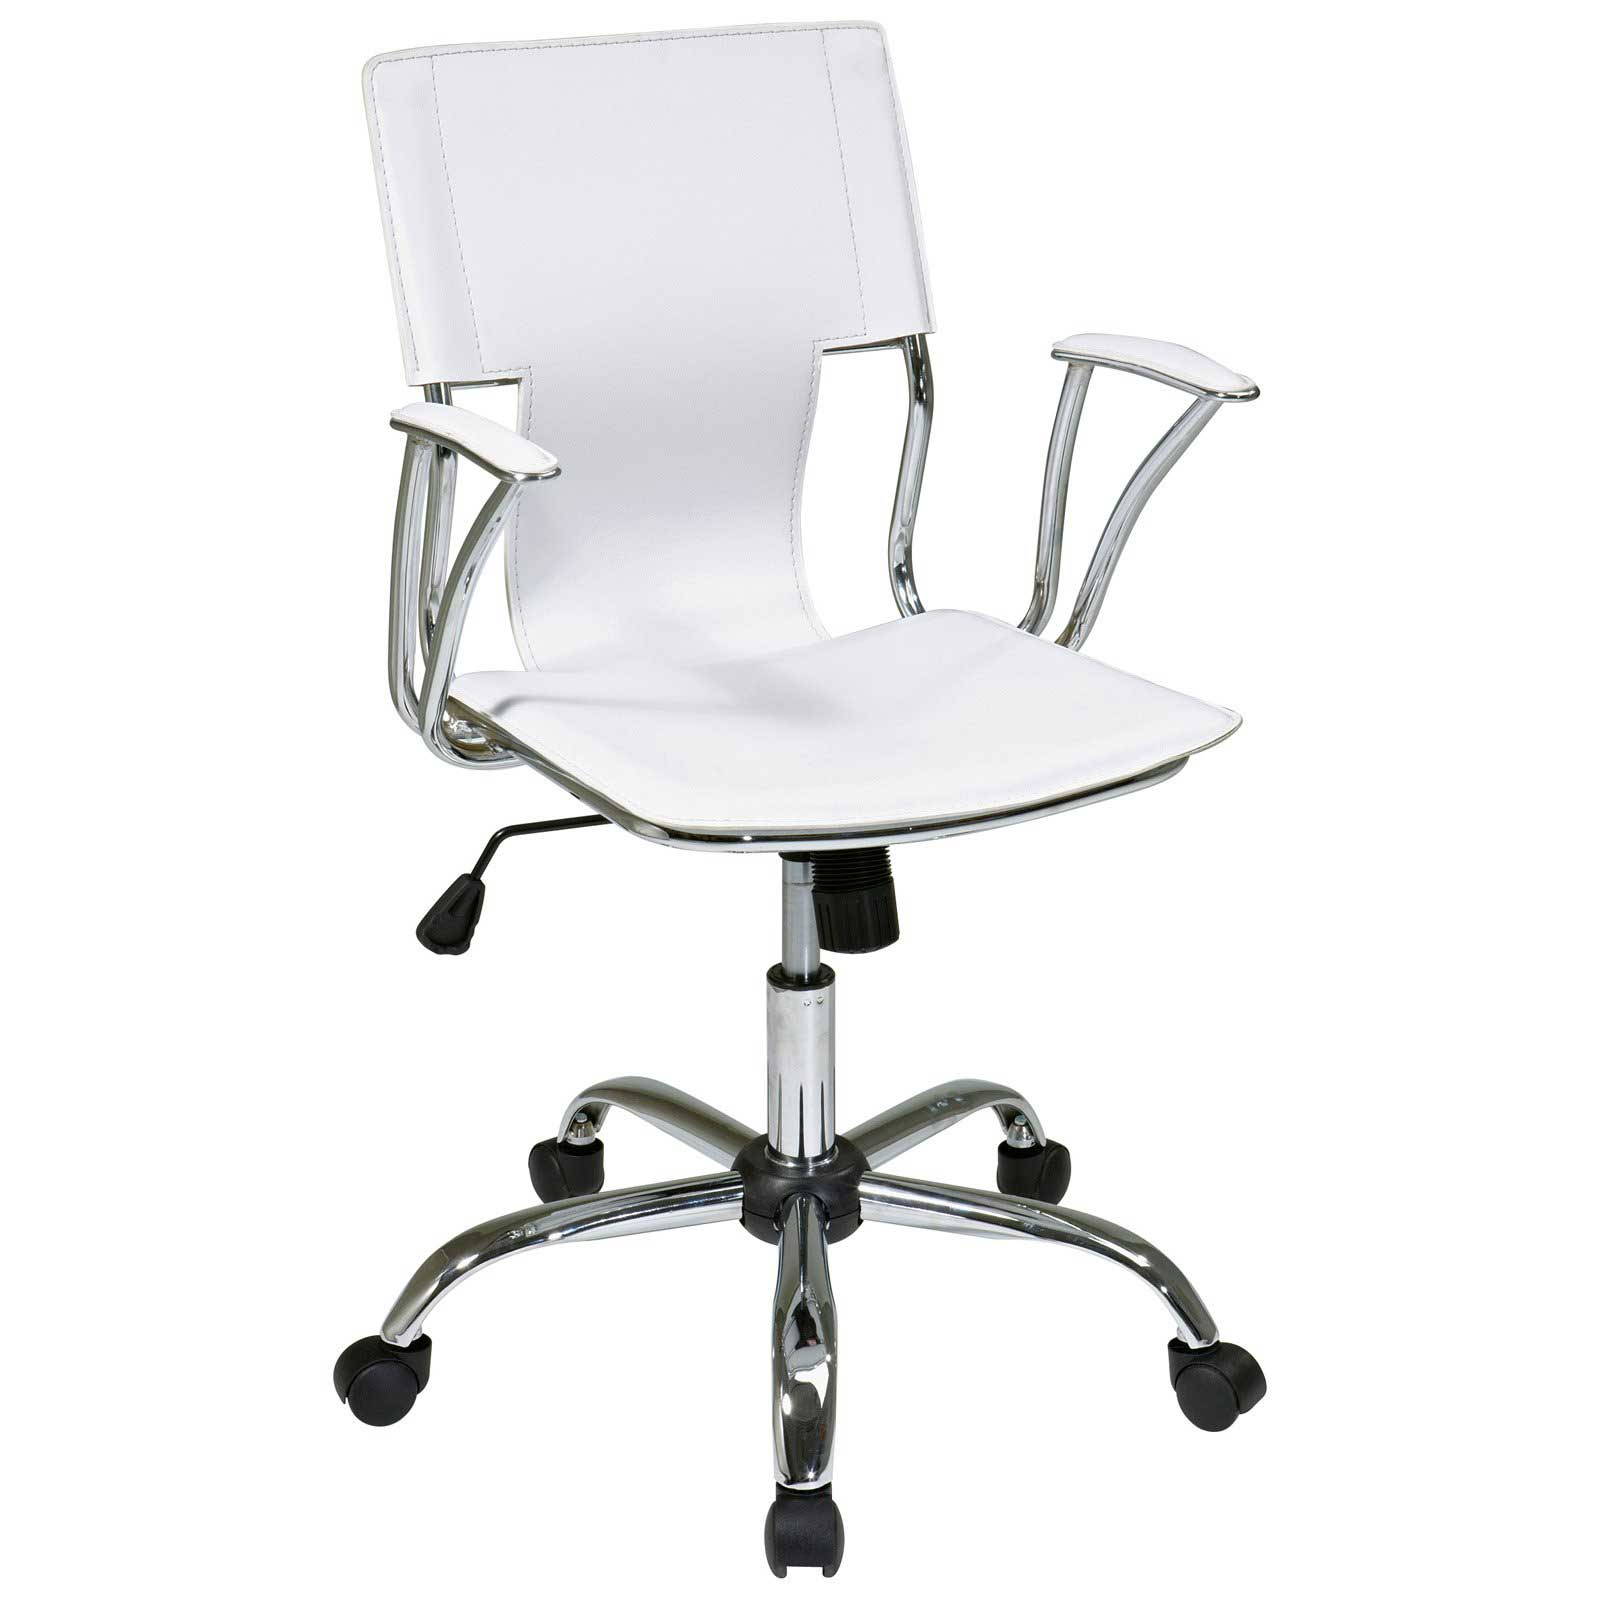 Office Chair White Office Star Wood Bankers Chairs Office Furniture